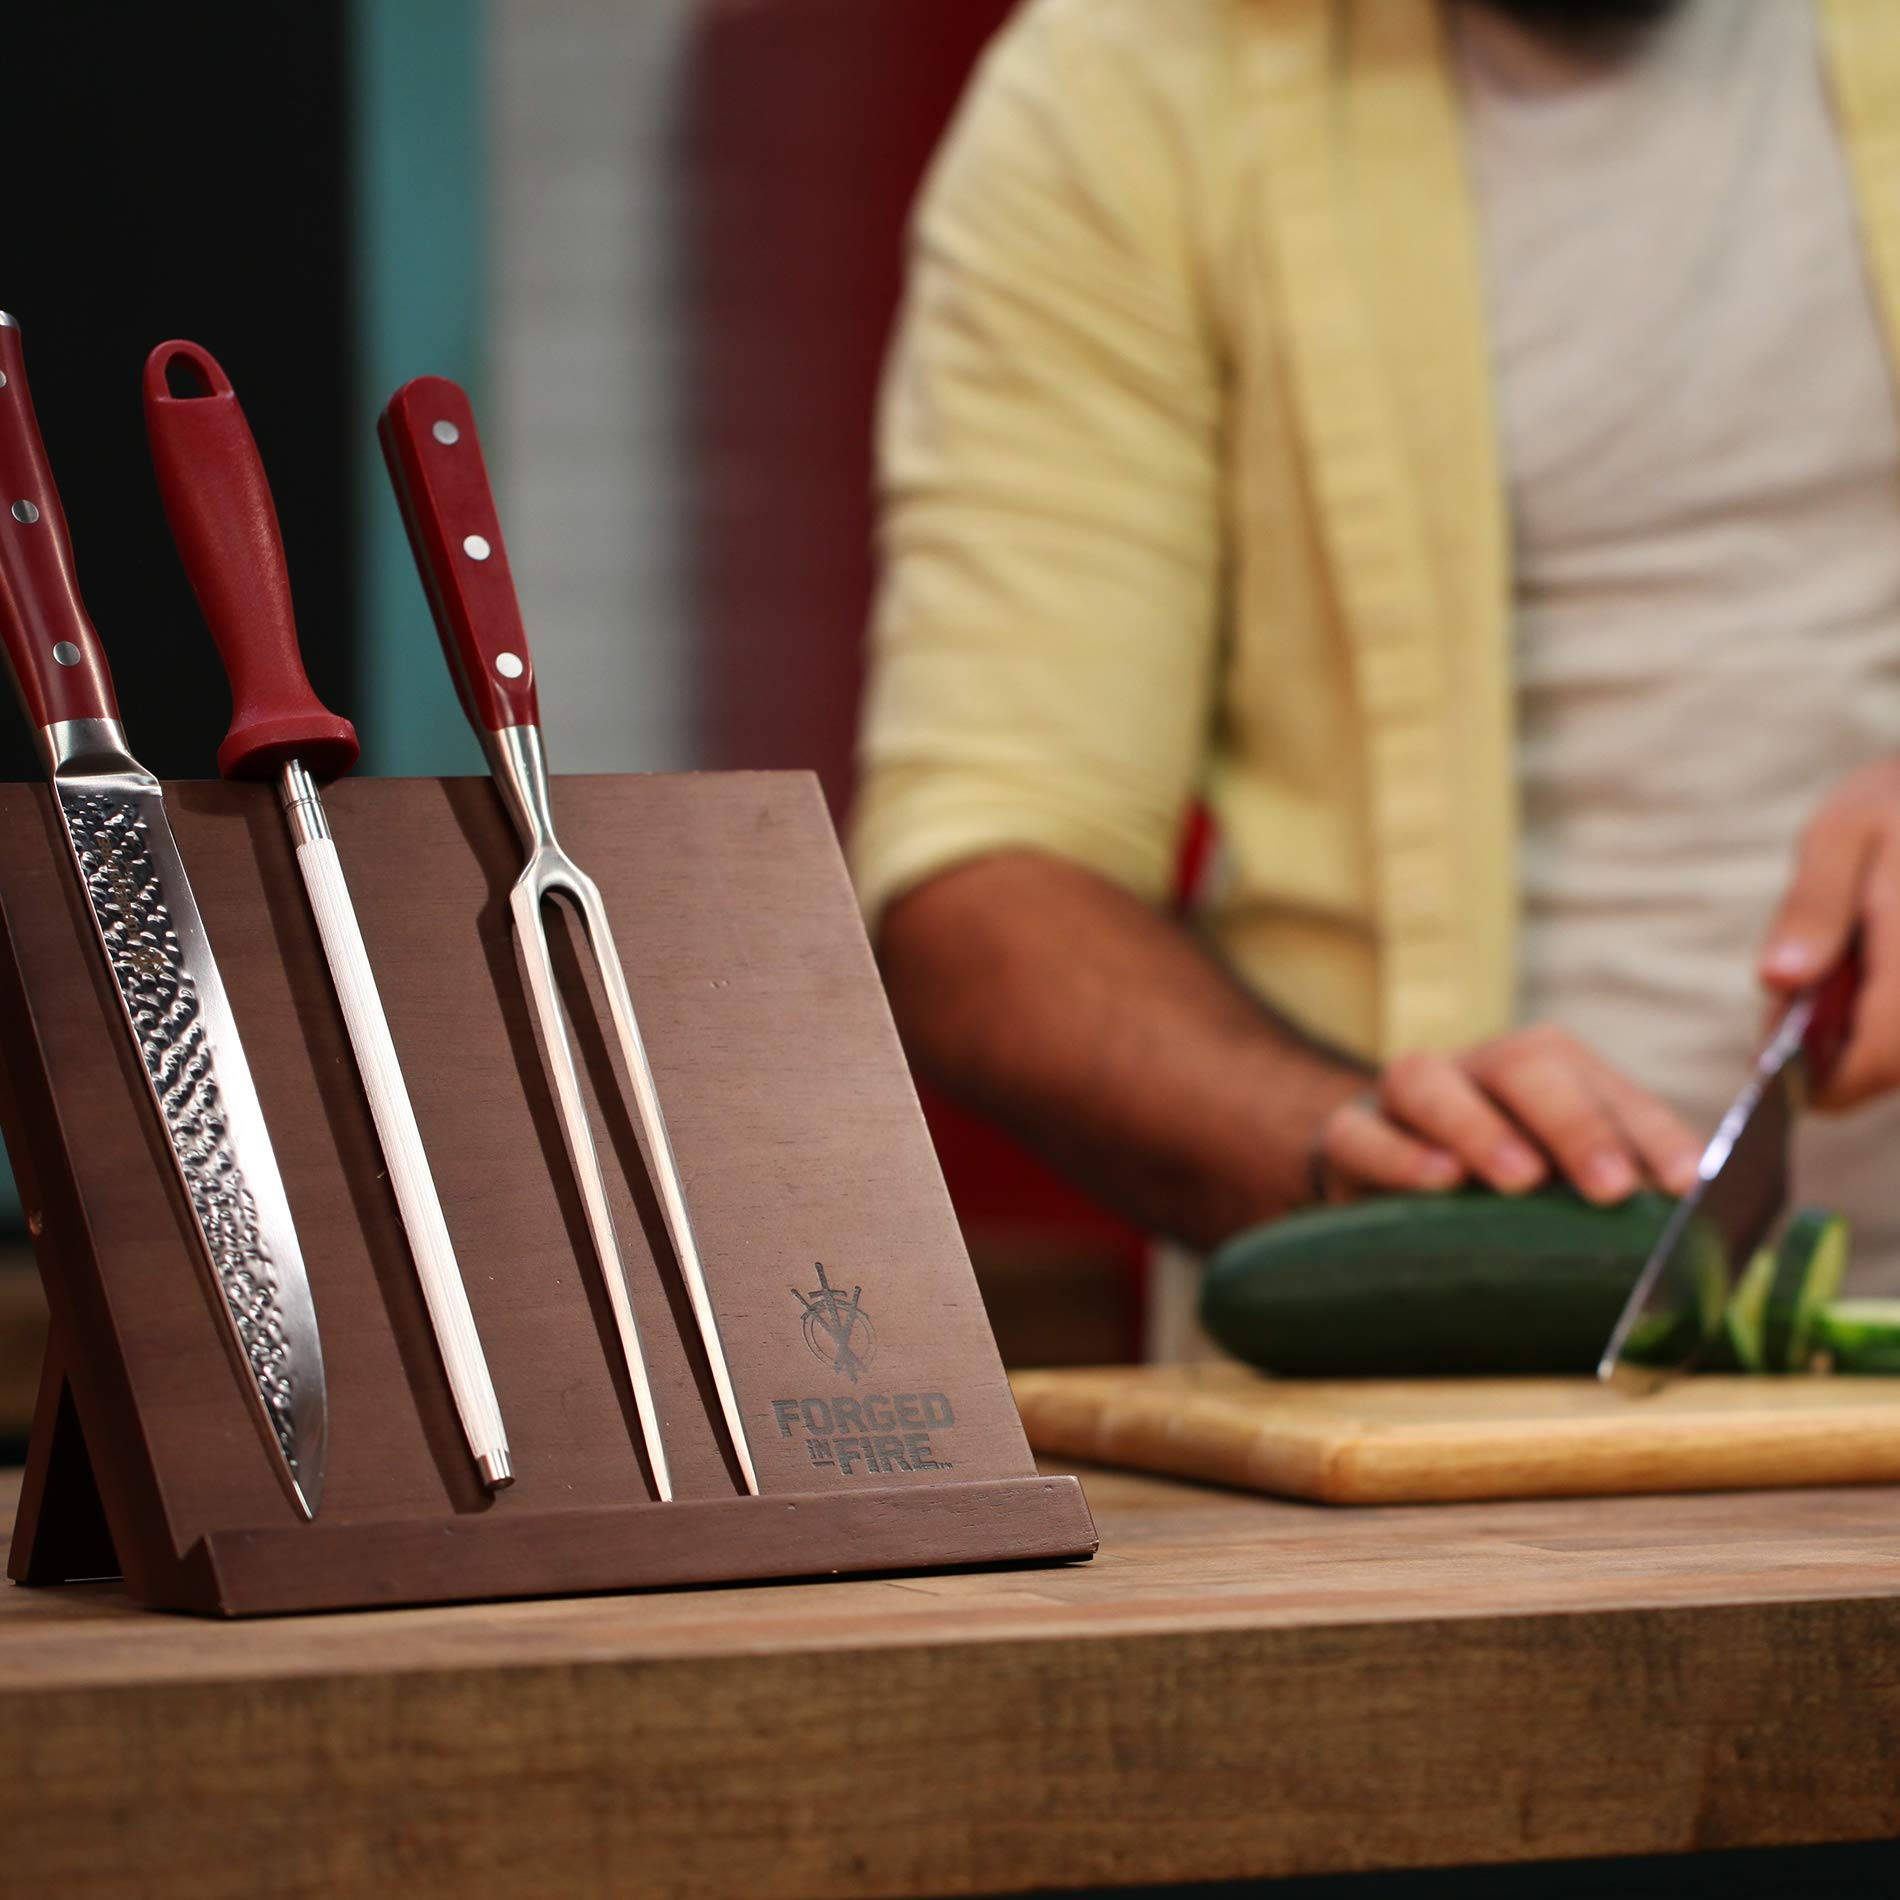 HISTORY - Forged in Fire - Magnetic Knife Block - Natural Wood, Space Saver by Forged in Fire (Image #4)